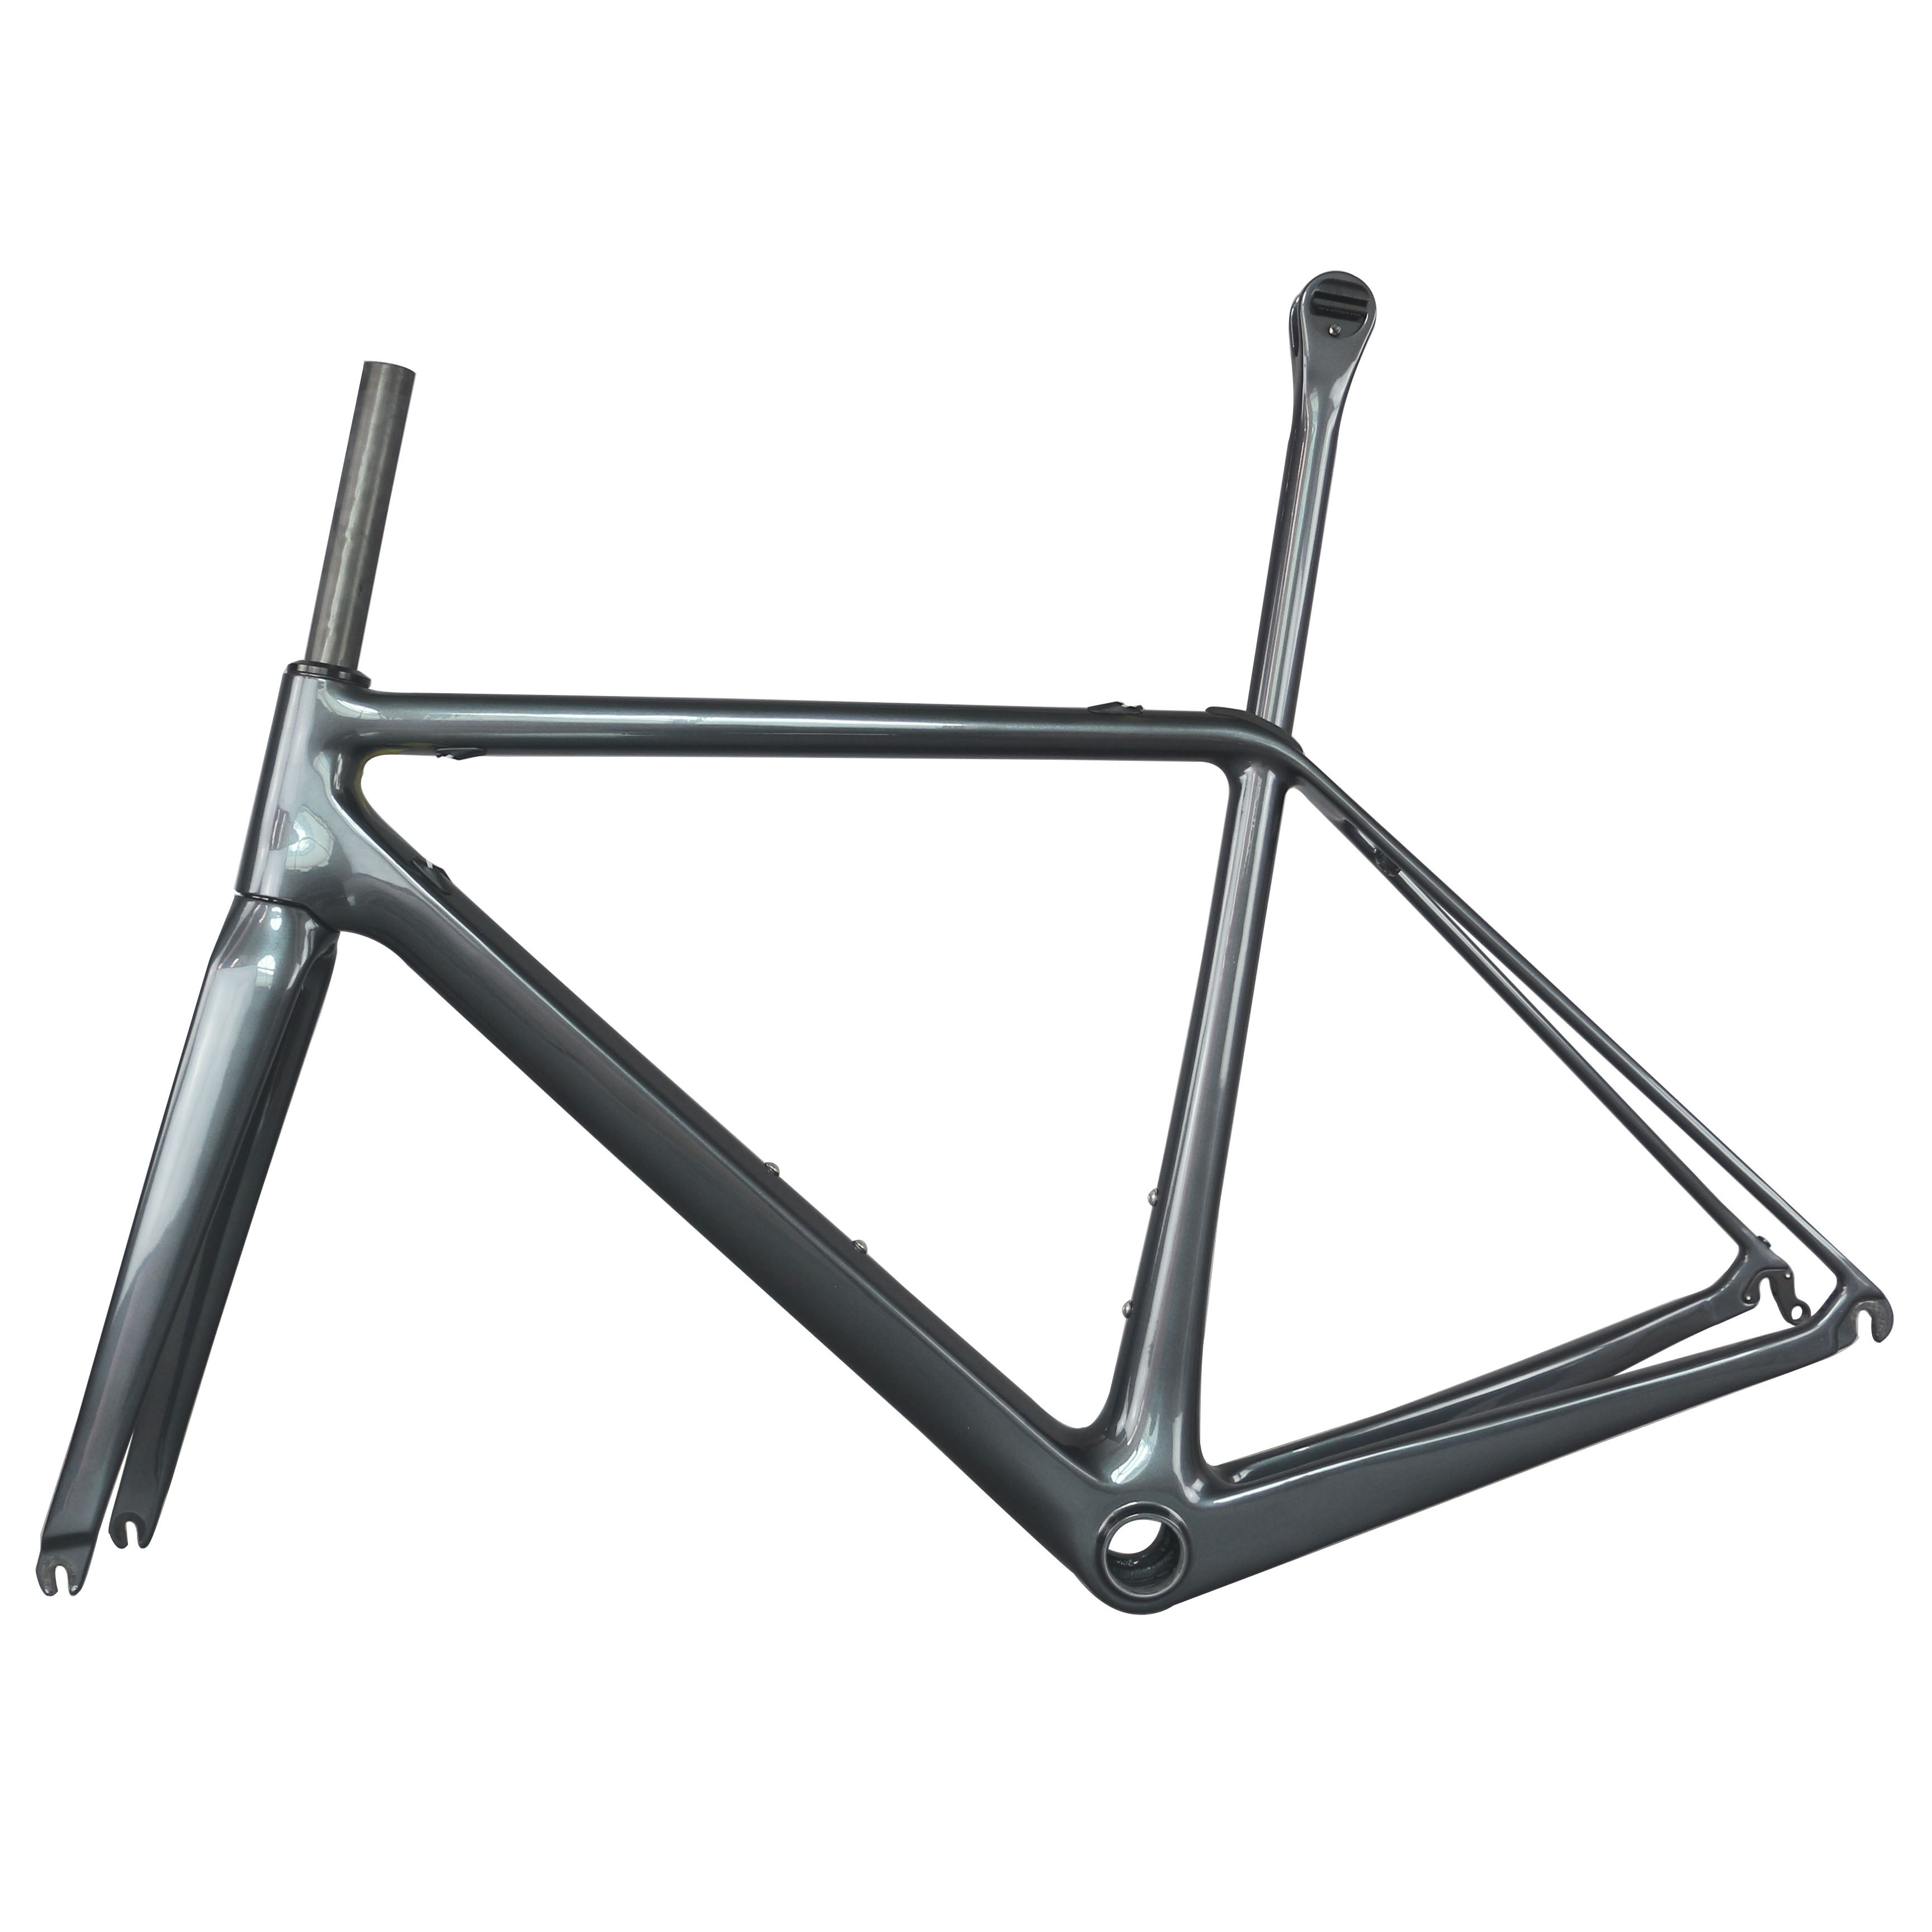 Superlight Road Frame Toray Carbon Fiber  T1000 Road Frame FM609 Custom Paint With  Zero Offset Seatpost  BB86